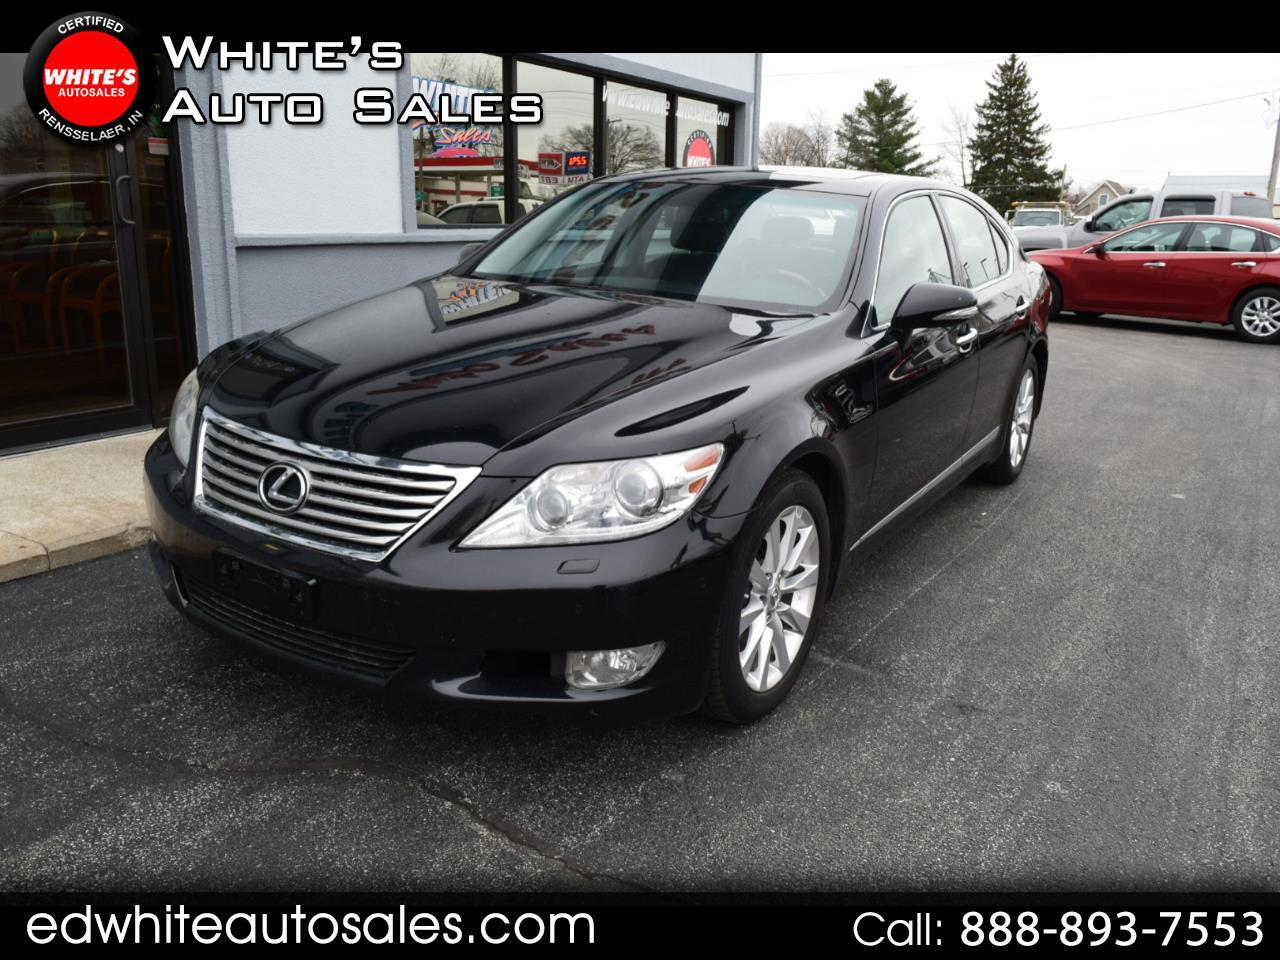 2012 Lexus LS 460 Luxury Sedan AWD